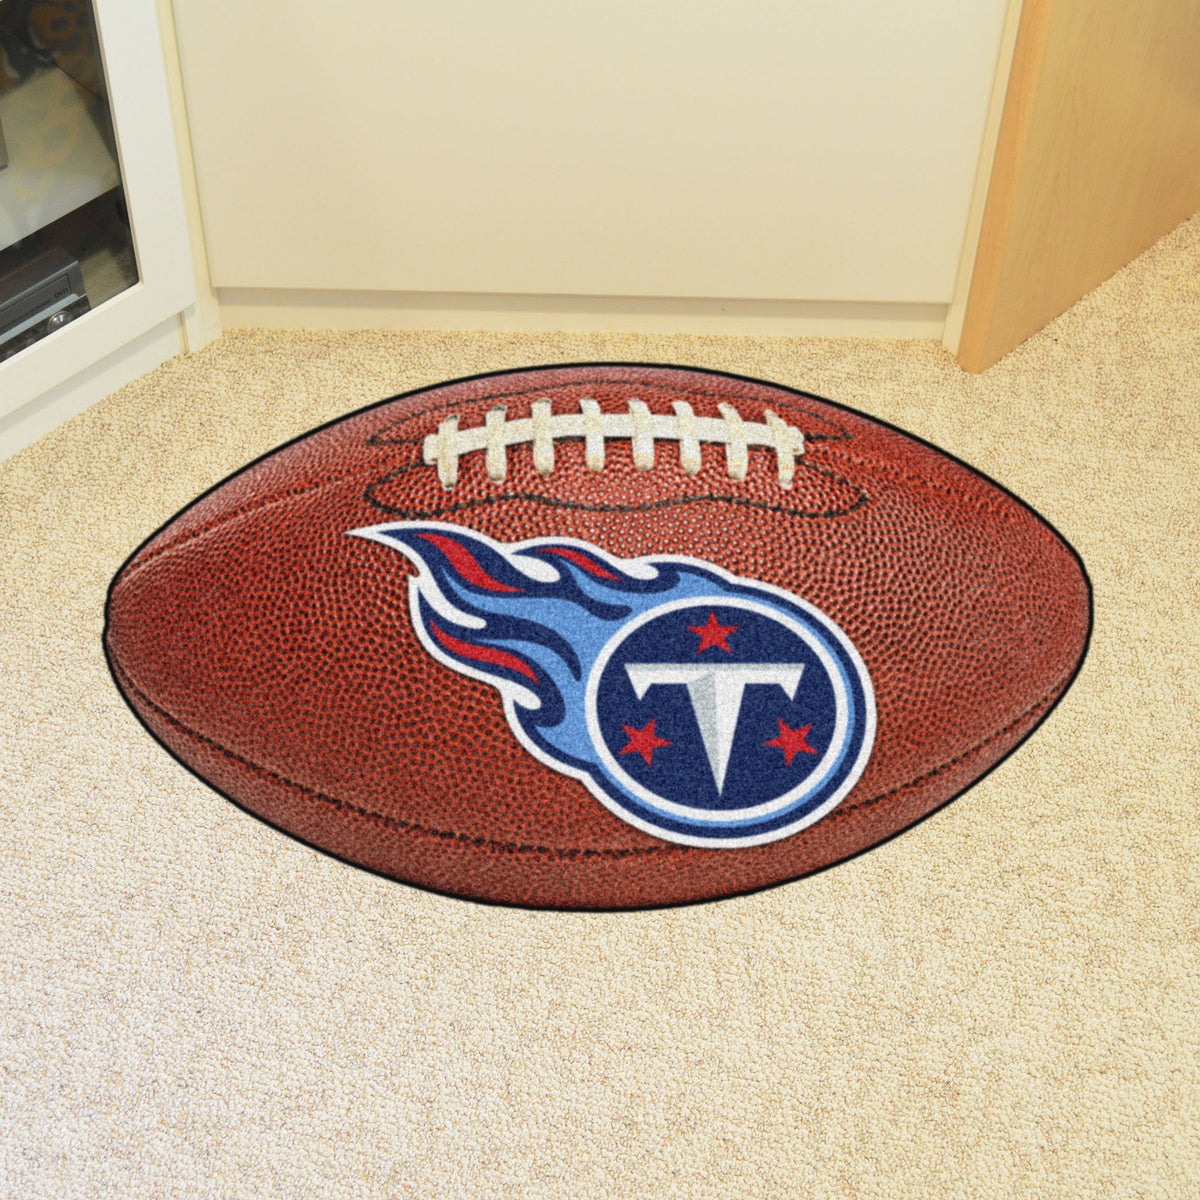 NFL - Football Mat NFL Mats, Custom Shape Rugs, Football Mat, NFL, Home Fan Mats Tennessee Titans